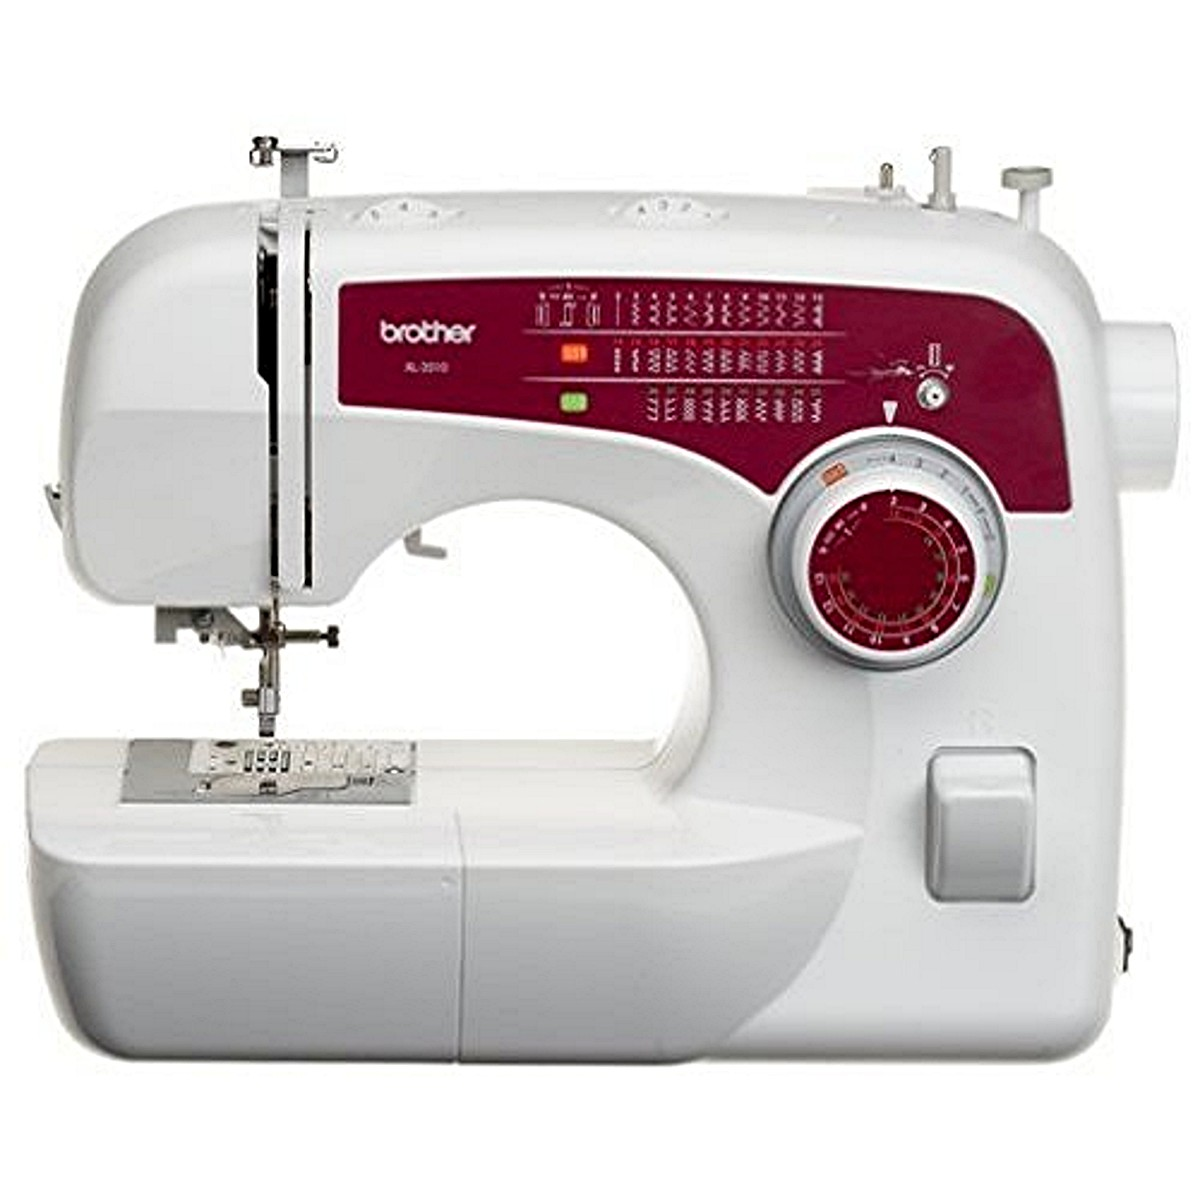 sewing machine cost